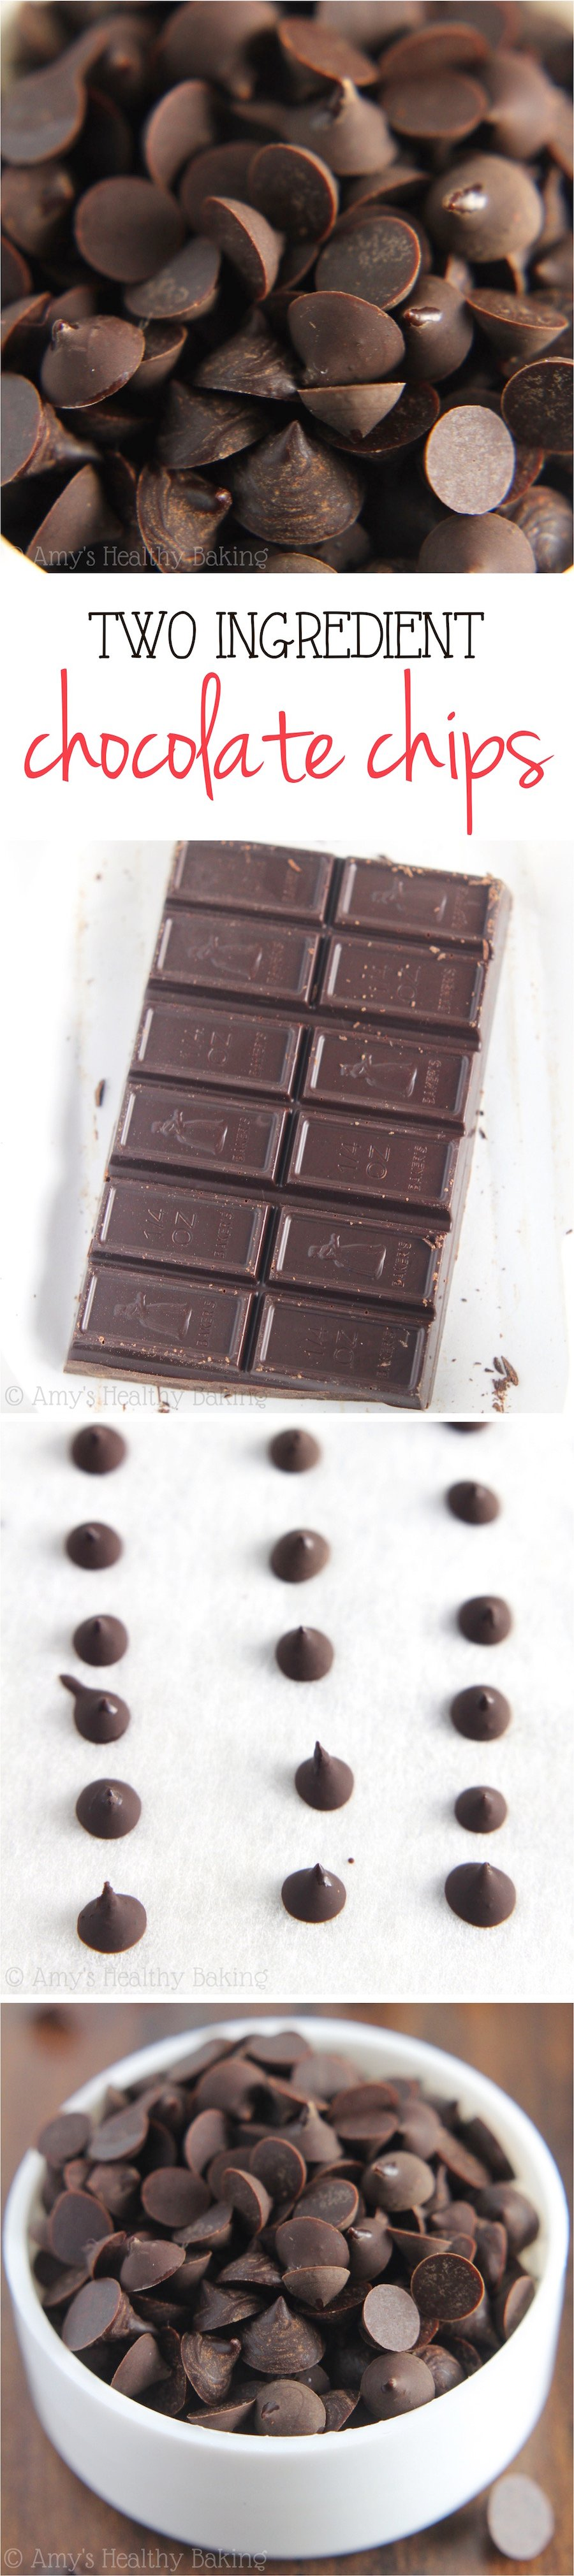 Homemade Two-Ingredient Chocolate Chips | Amy's Healthy Baking